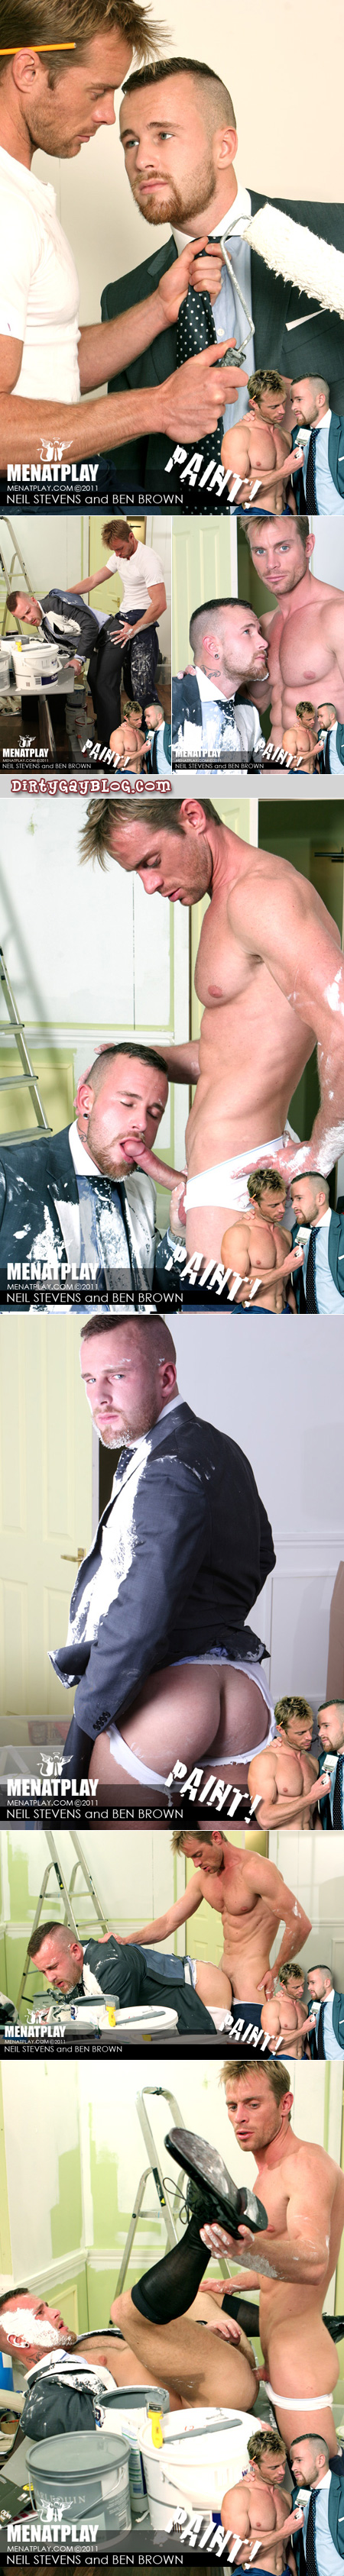 Hairy executive in a suit and tie gets abused and fucked by the ripped, gorgeous repair man.